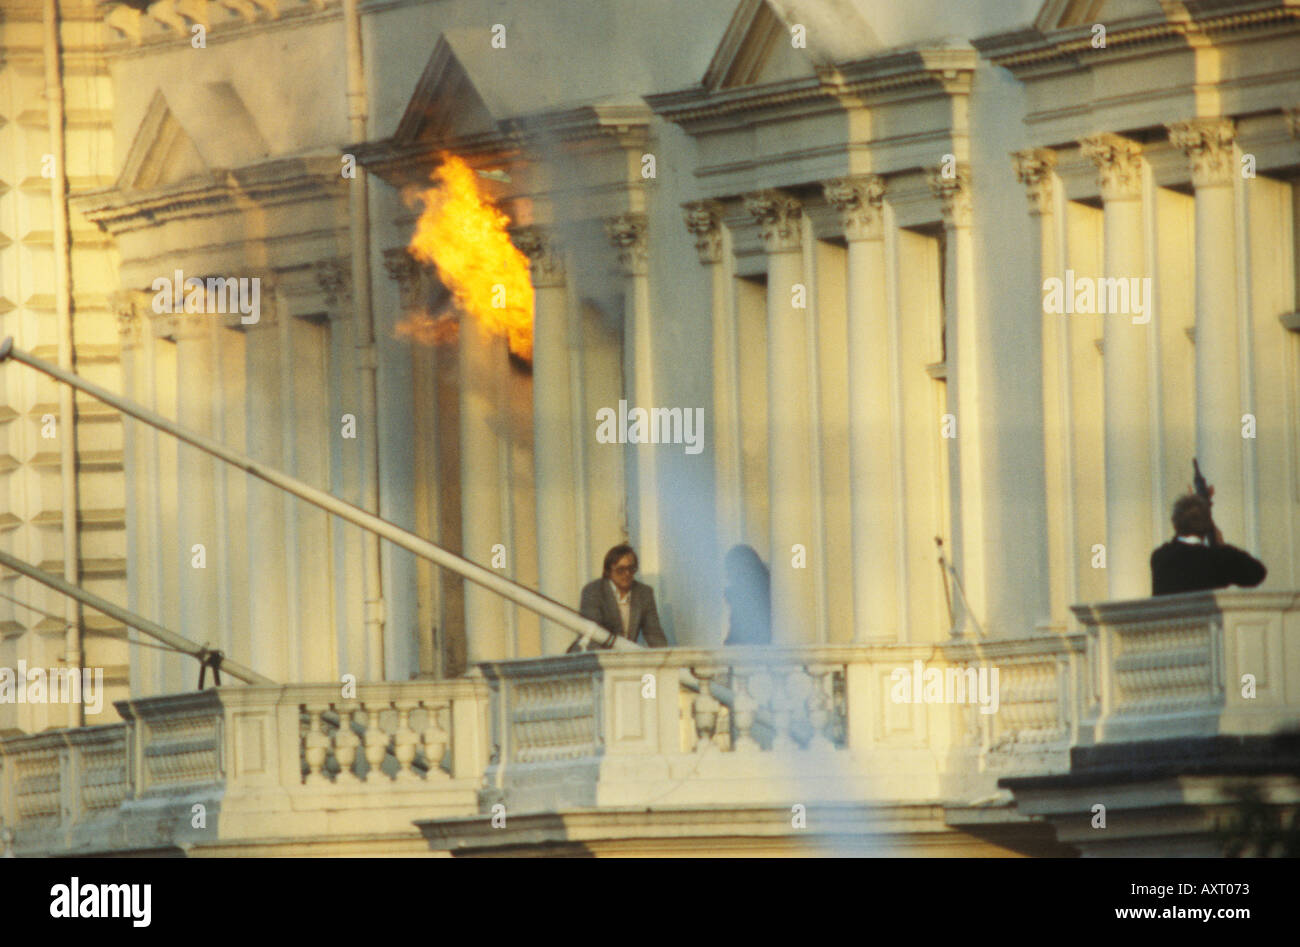 Iranian Embassy siege May 5th 1980 London UK 1980s UK Circa 1985 HOMER SYKES Stock Photo